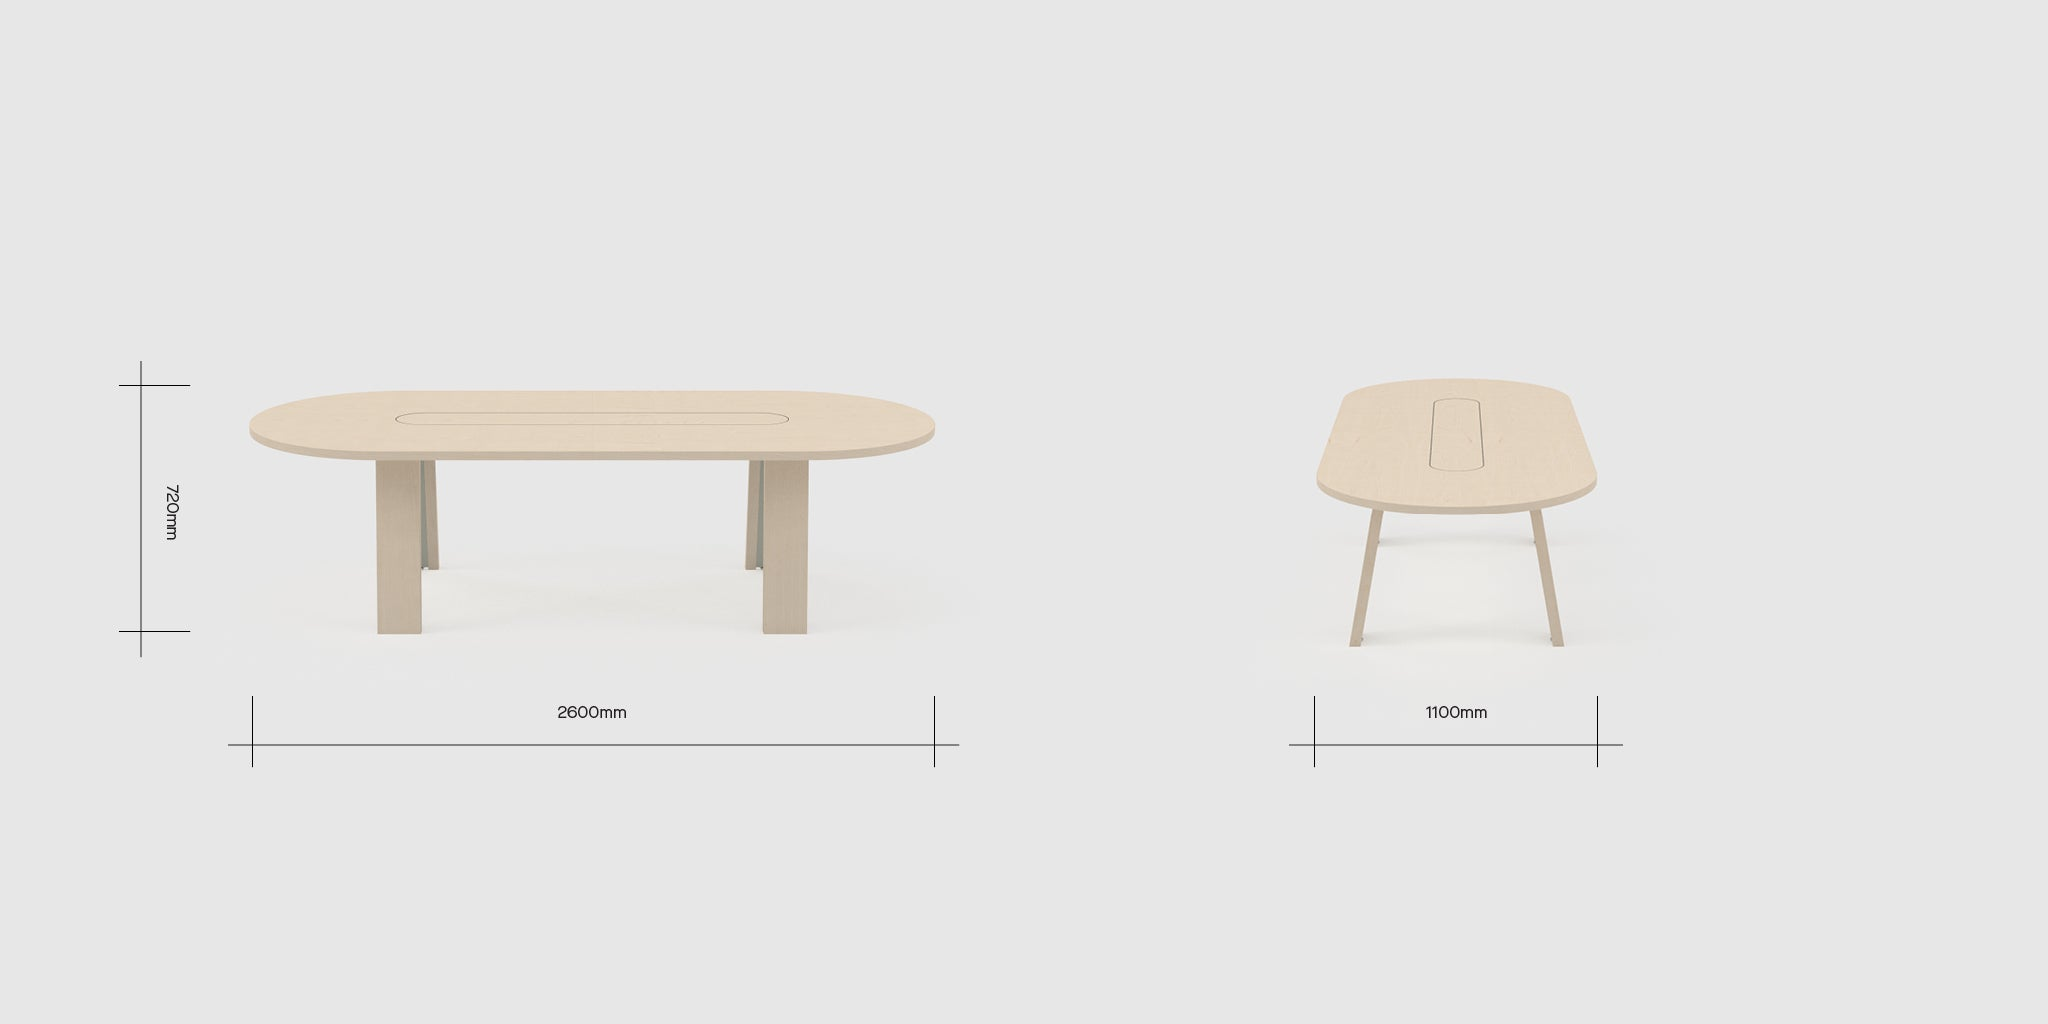 Anssi 6 Person Table Dimensions